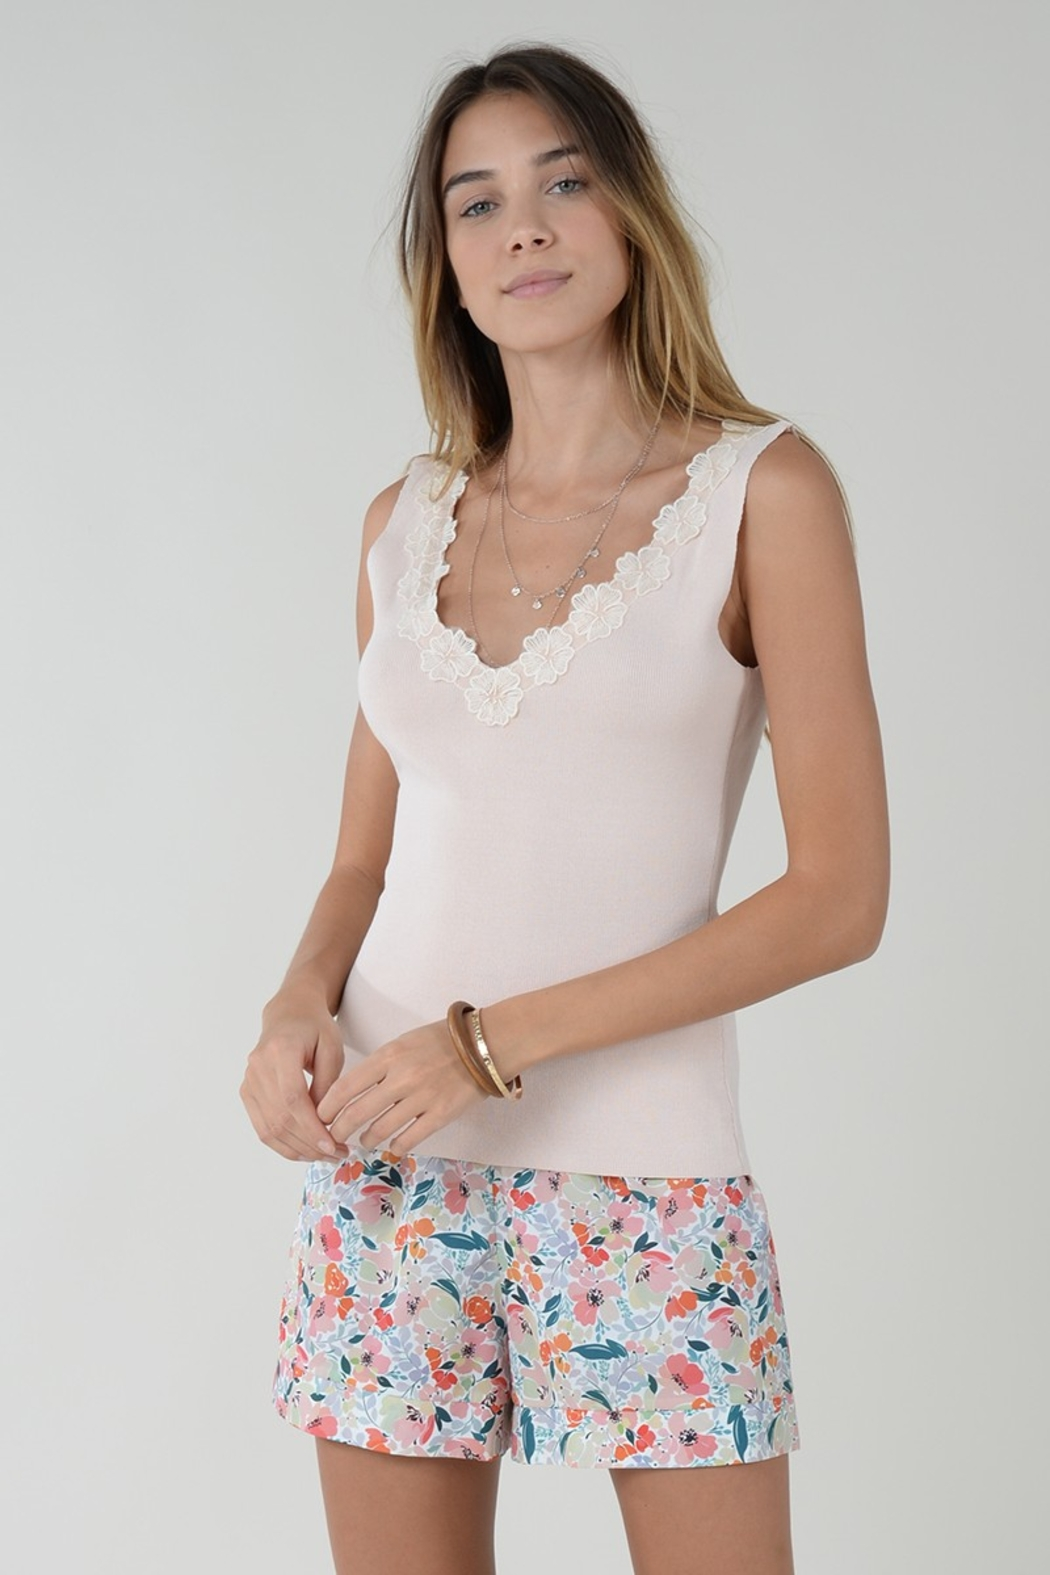 Molly Bracken TOP WITH FLOWER ACCENT - Side Cropped Image